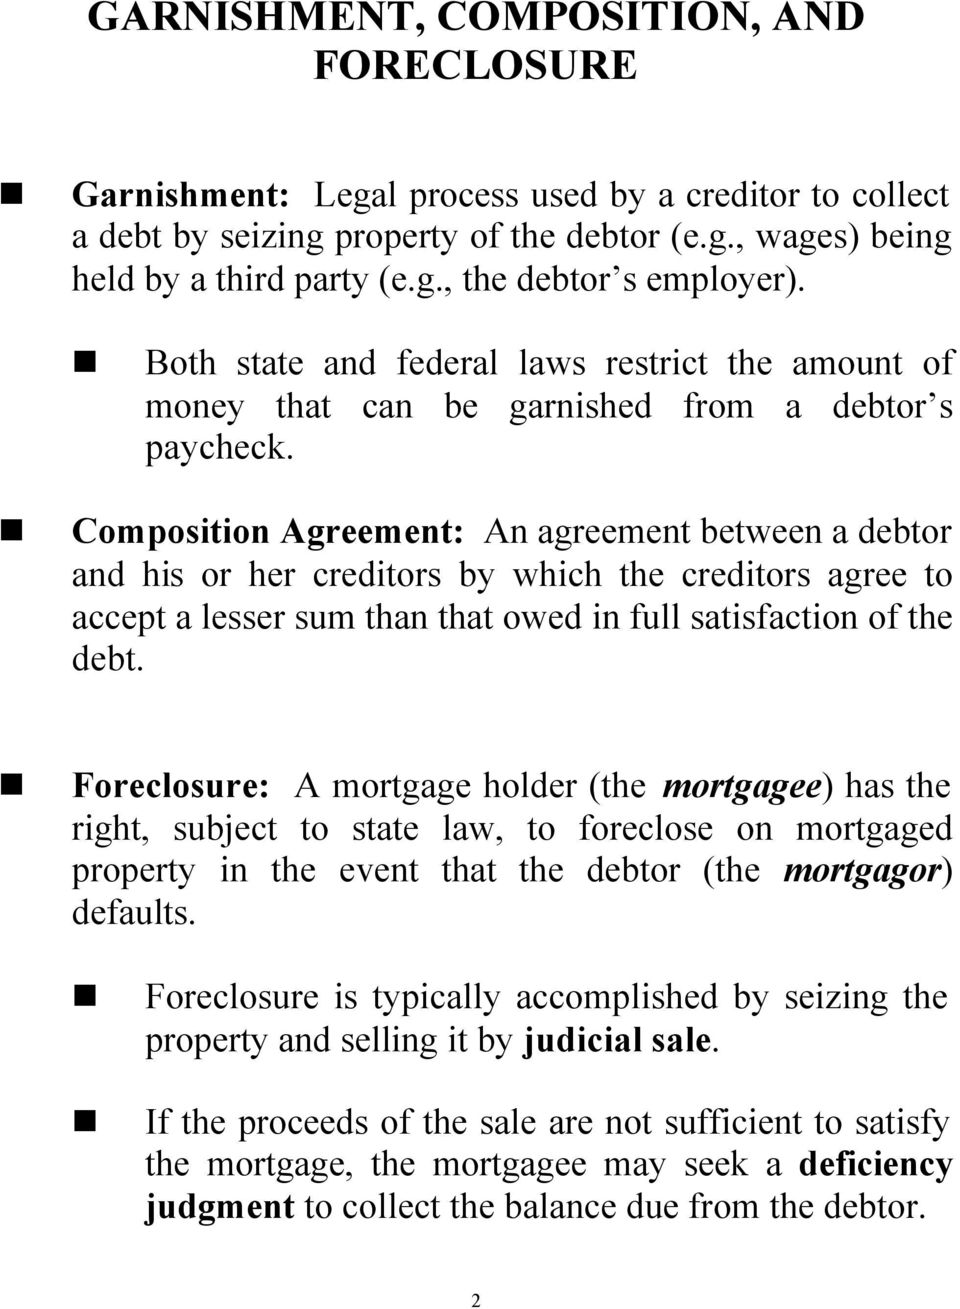 Composition Agreement: An agreement between a debtor and his or her creditors by which the creditors agree to accept a lesser sum than that owed in full satisfaction of the debt.